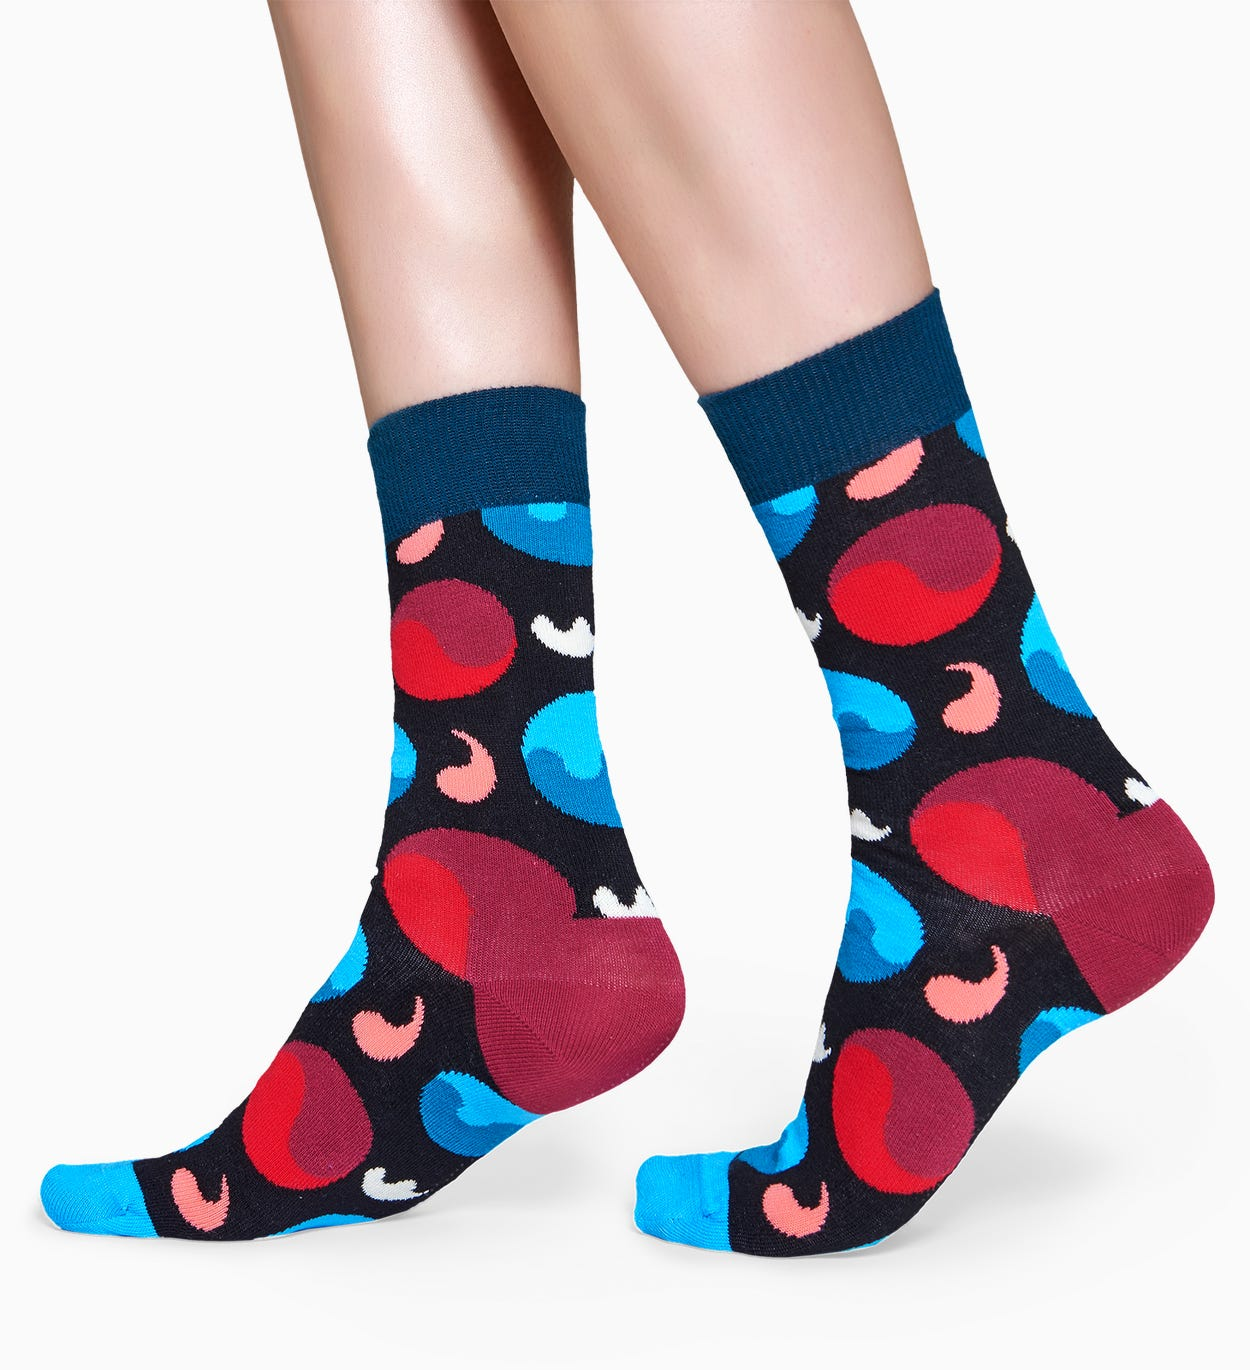 Schwarze Baumwollsocken: Yin Yang Design | Happy Socks